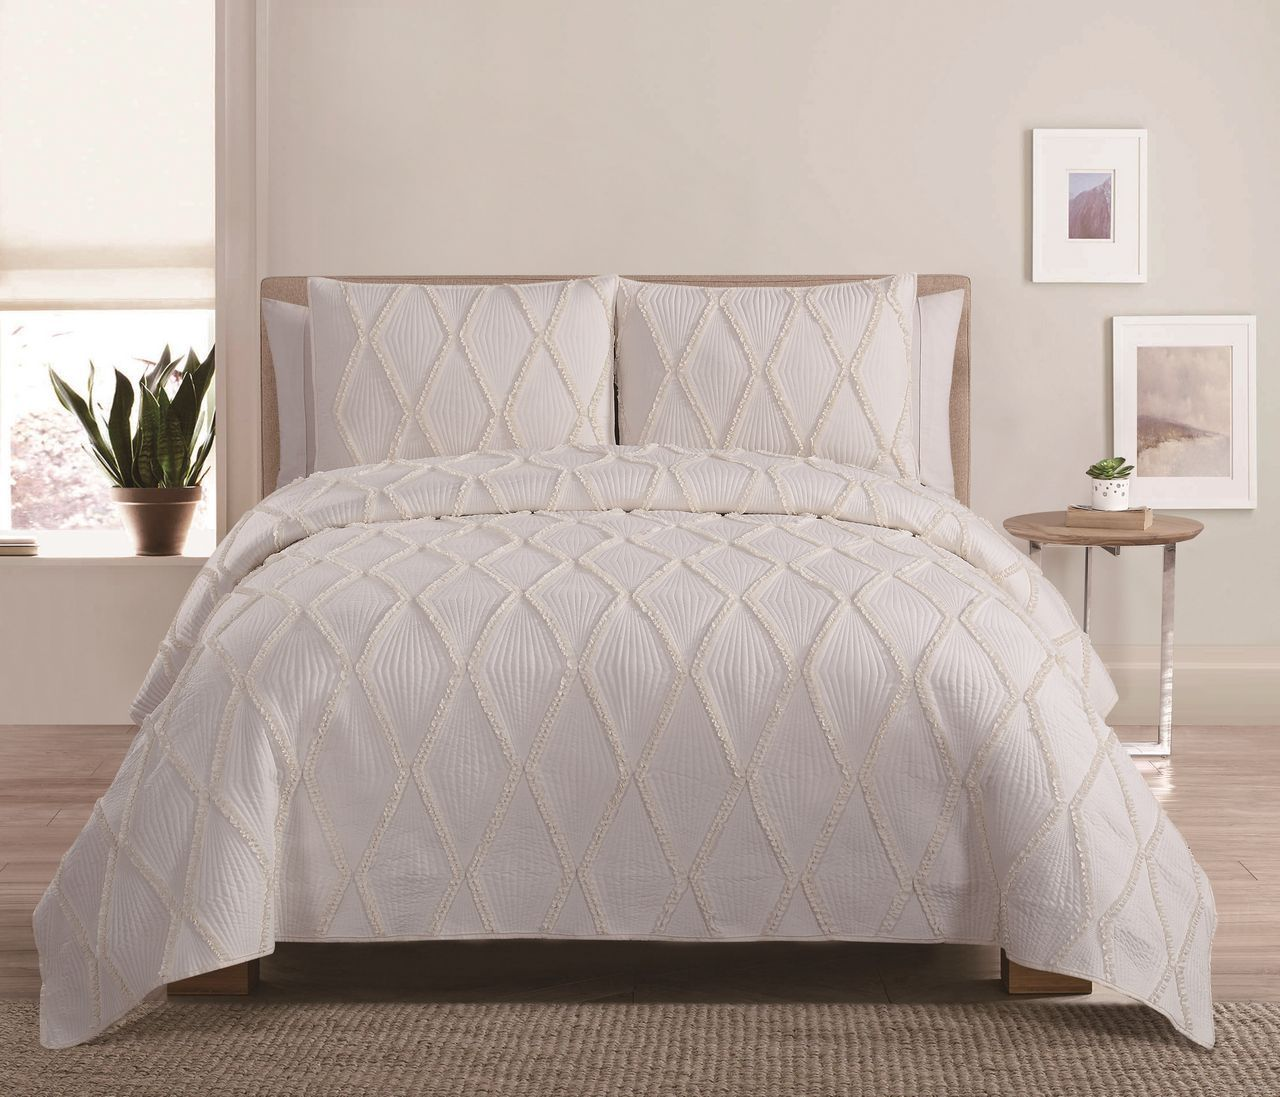 4 Piece Diamond Ruffle Ivory Quilt Set | Bedrooms | Pinterest ... : ivory quilts - Adamdwight.com